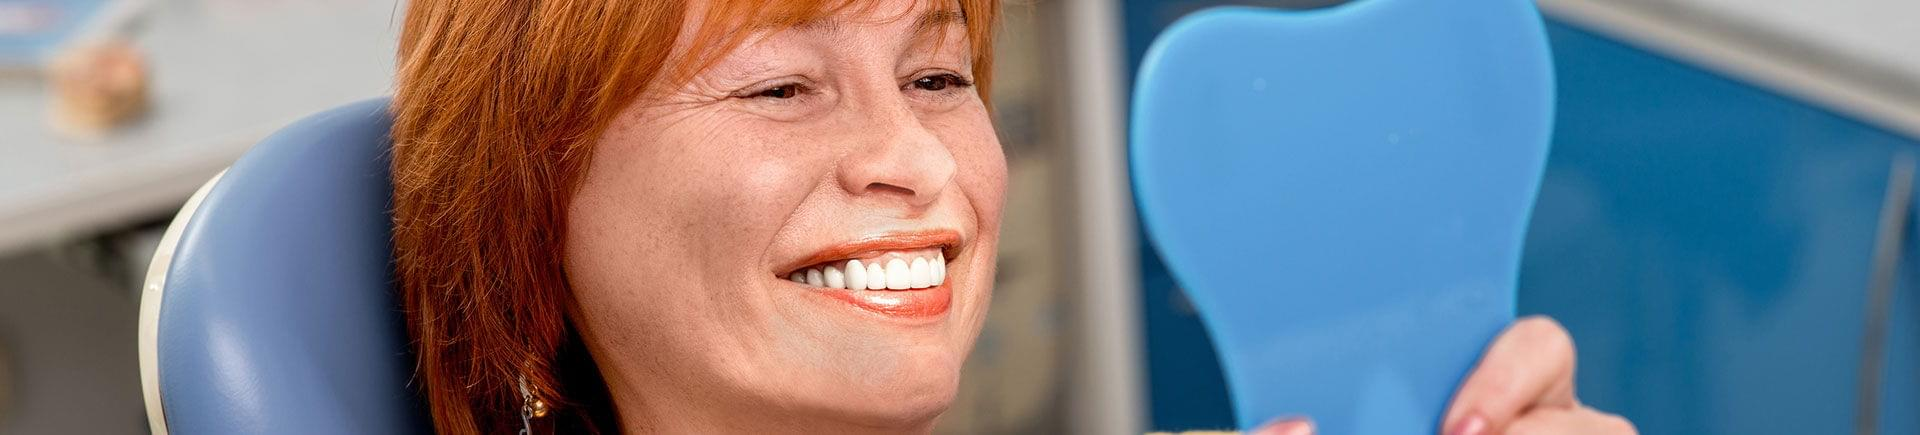 Happy mature woman in a dental chair looking at her perfect teeth in a mirror.